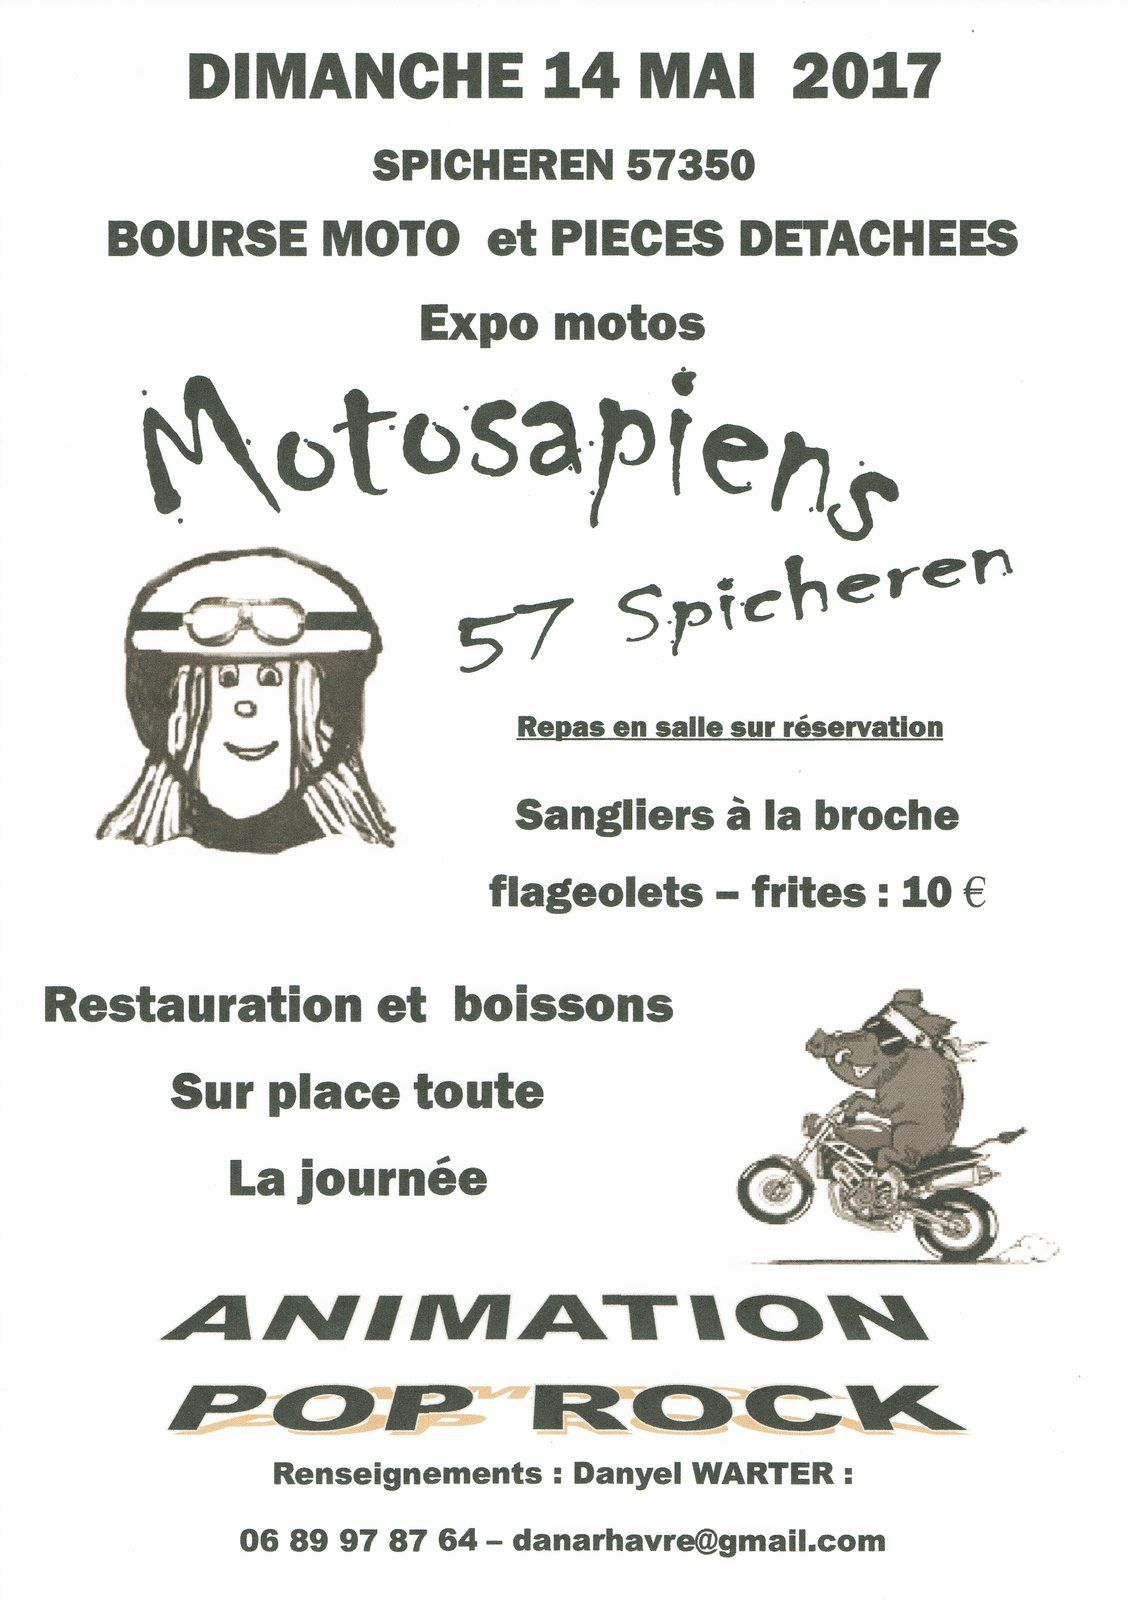 BOURSE MOTO ET PIECES DETACHEES